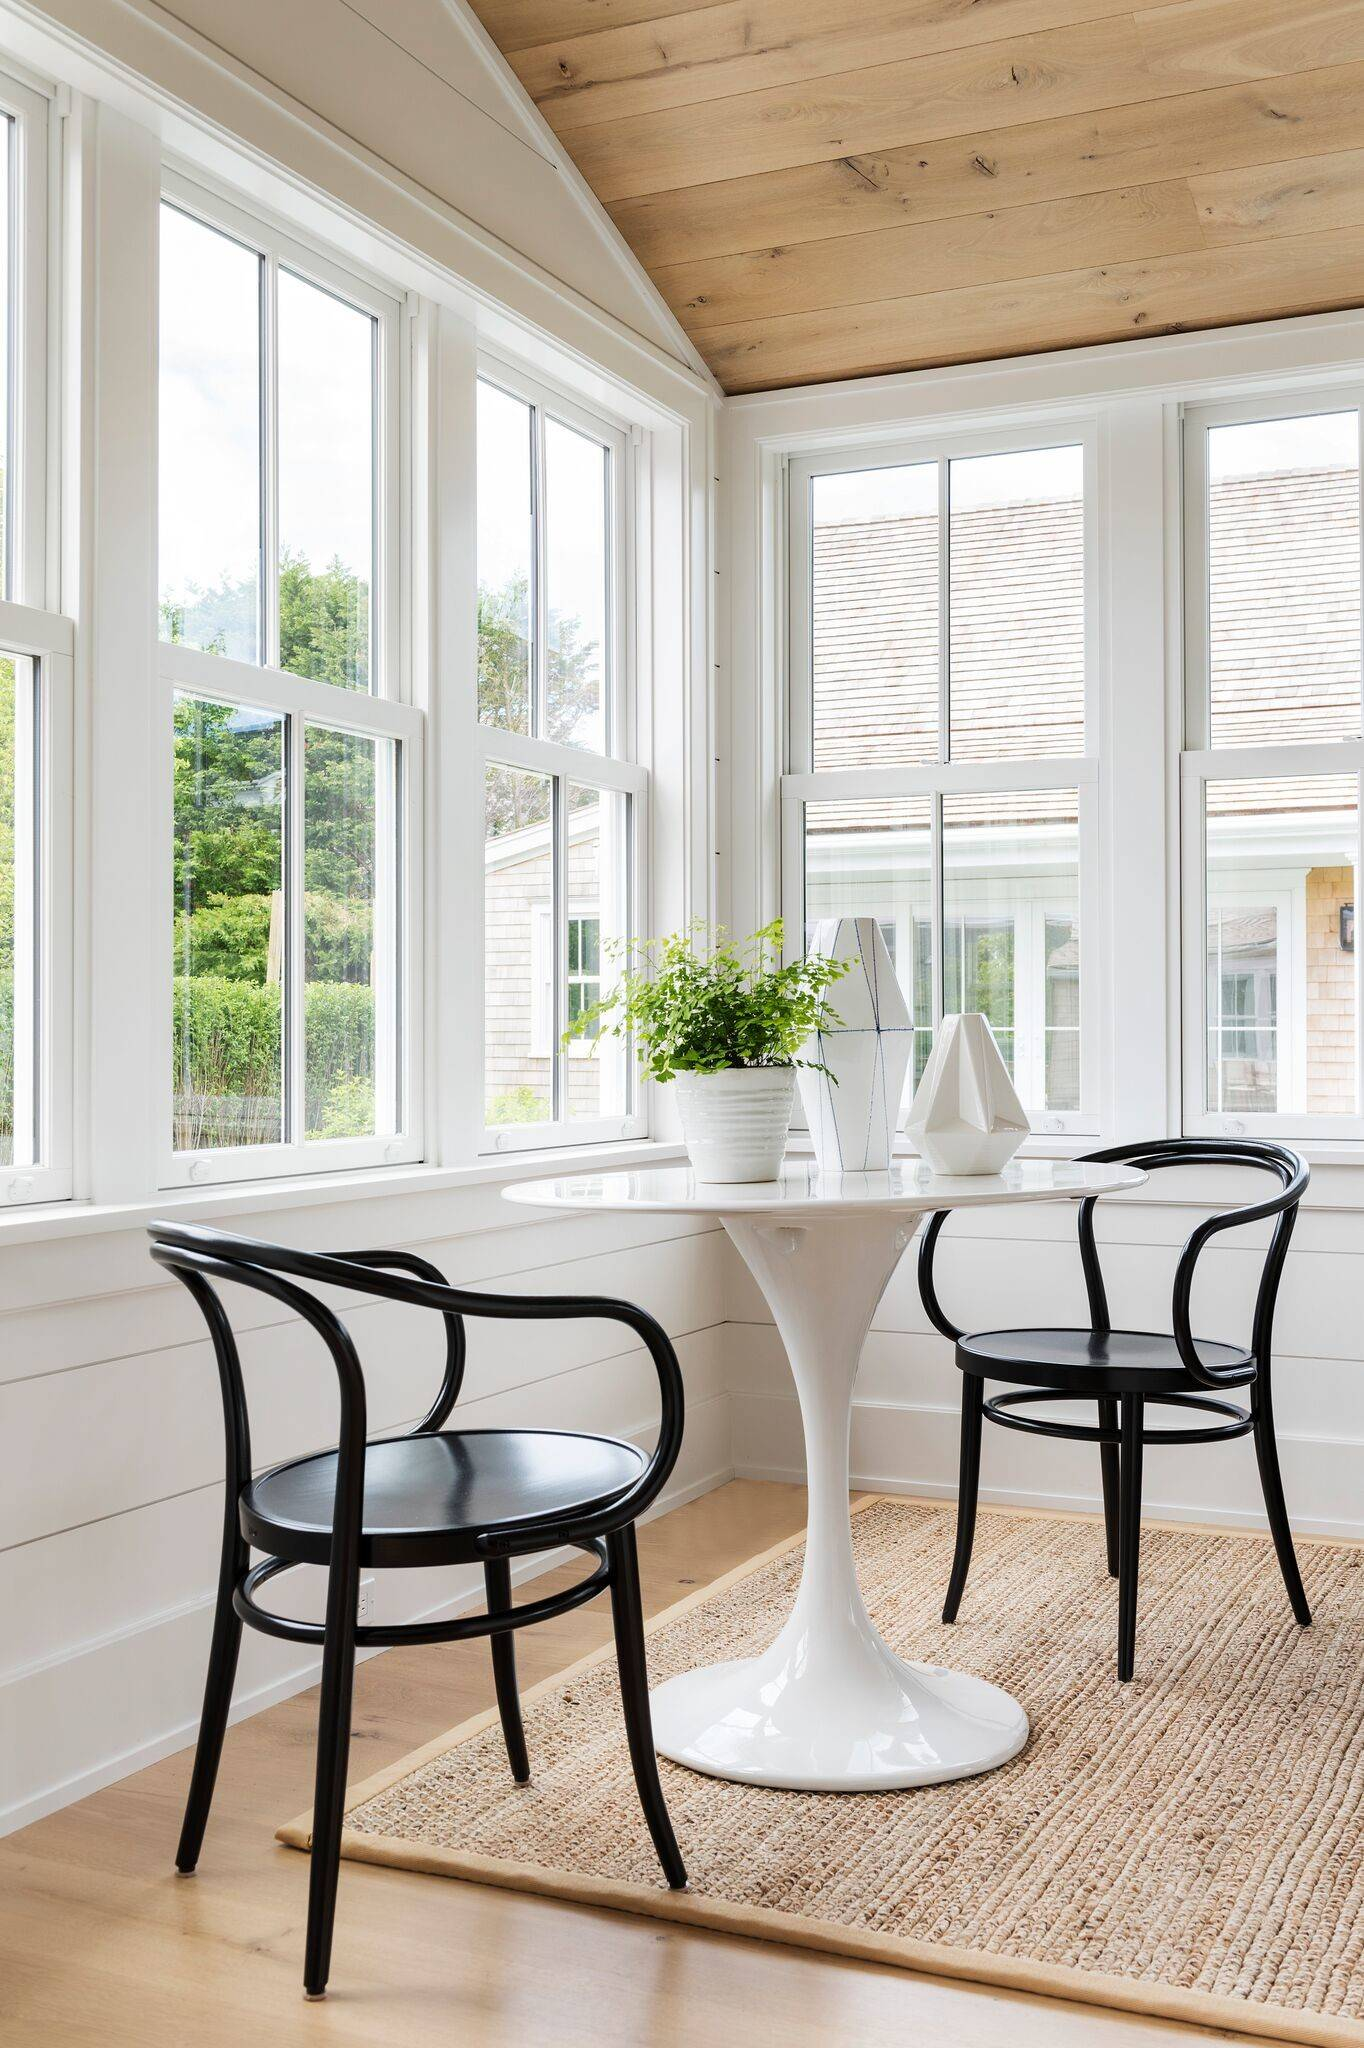 21 Beautiful Beige Sunroom Pictures & Ideas - September, 21  Houzz